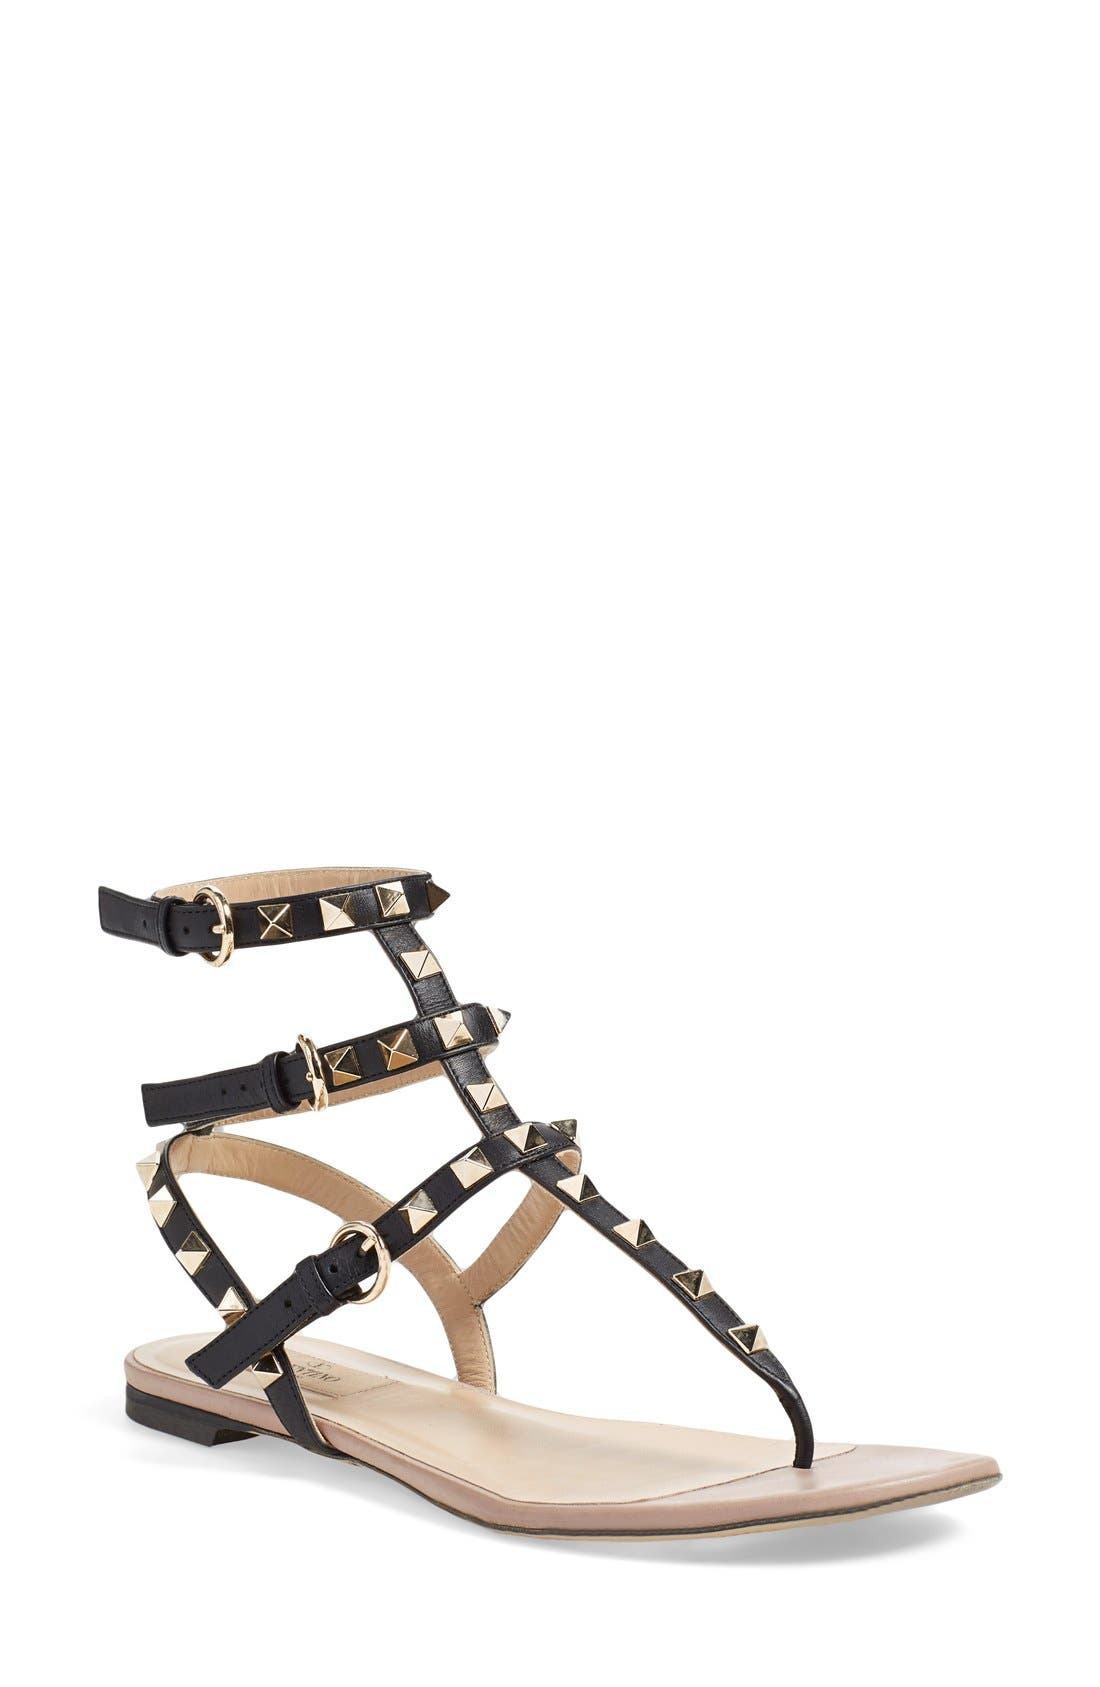 'Rockstud' Sandal,                         Main,                         color, BLACK LEATHER